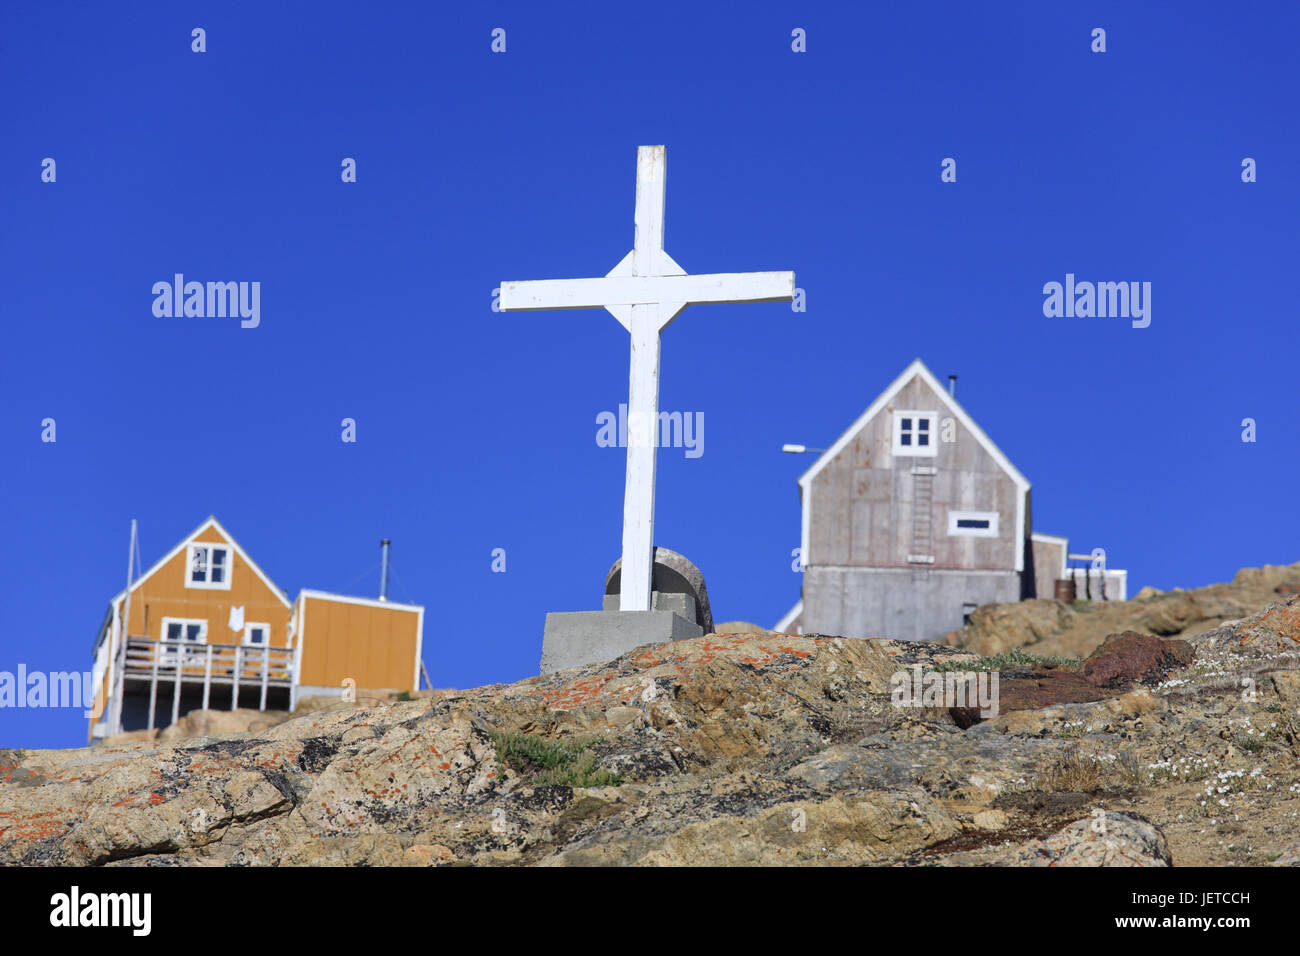 Greenland, Upernavik, residential houses, cemetery, cross, North-Western Greenland, coast, town, the Arctic, houses, - Stock Image